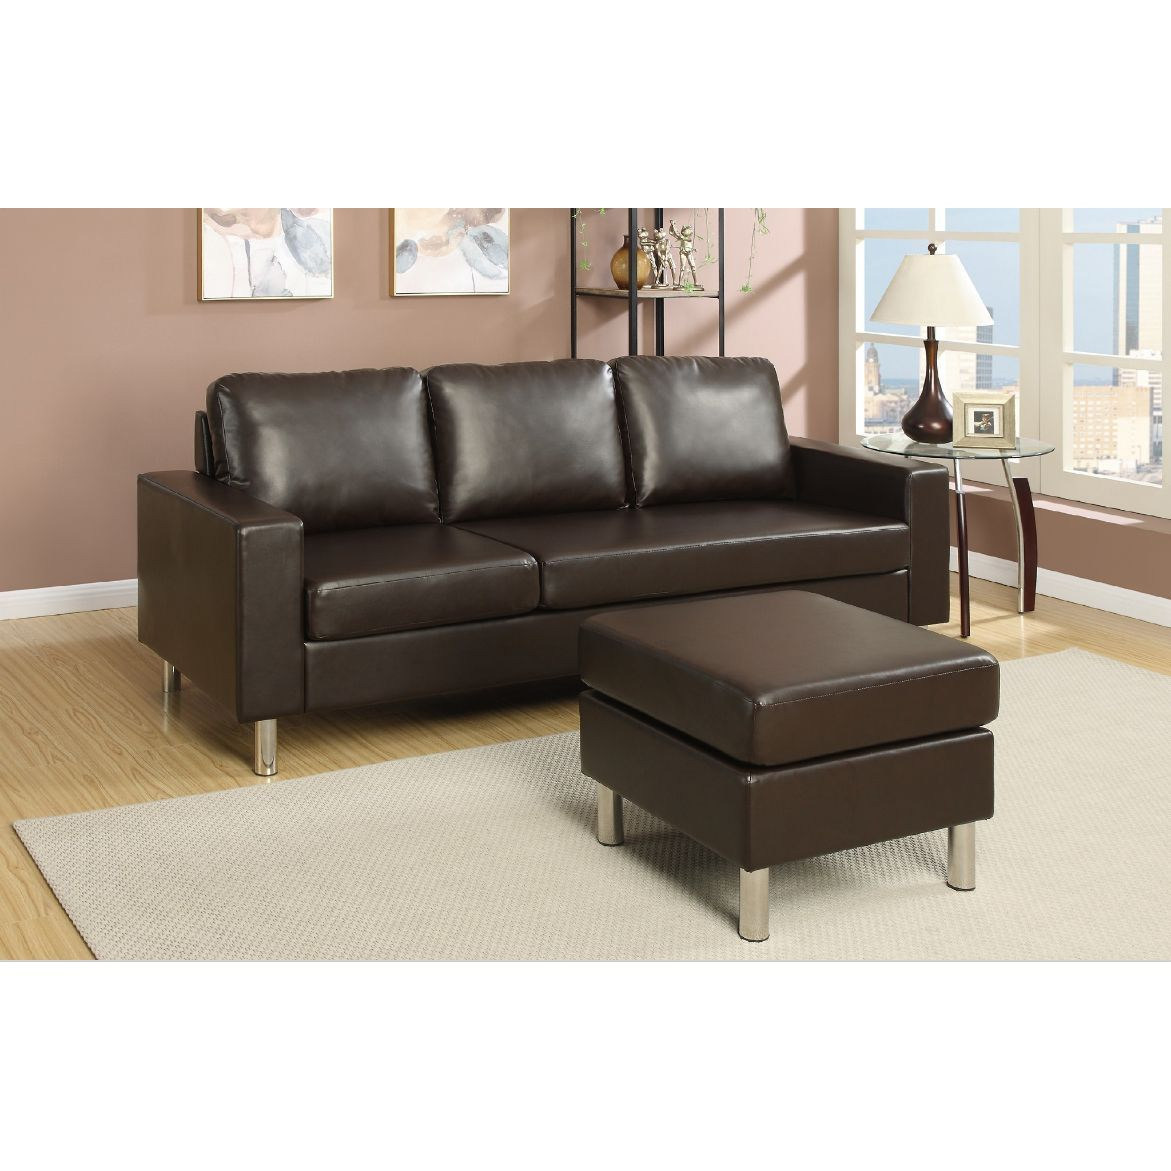 Nathan 2 Piece Sectional Sofa 2 Piece Sectional Sofa Sectional Sofa Couch Sectional Sofa